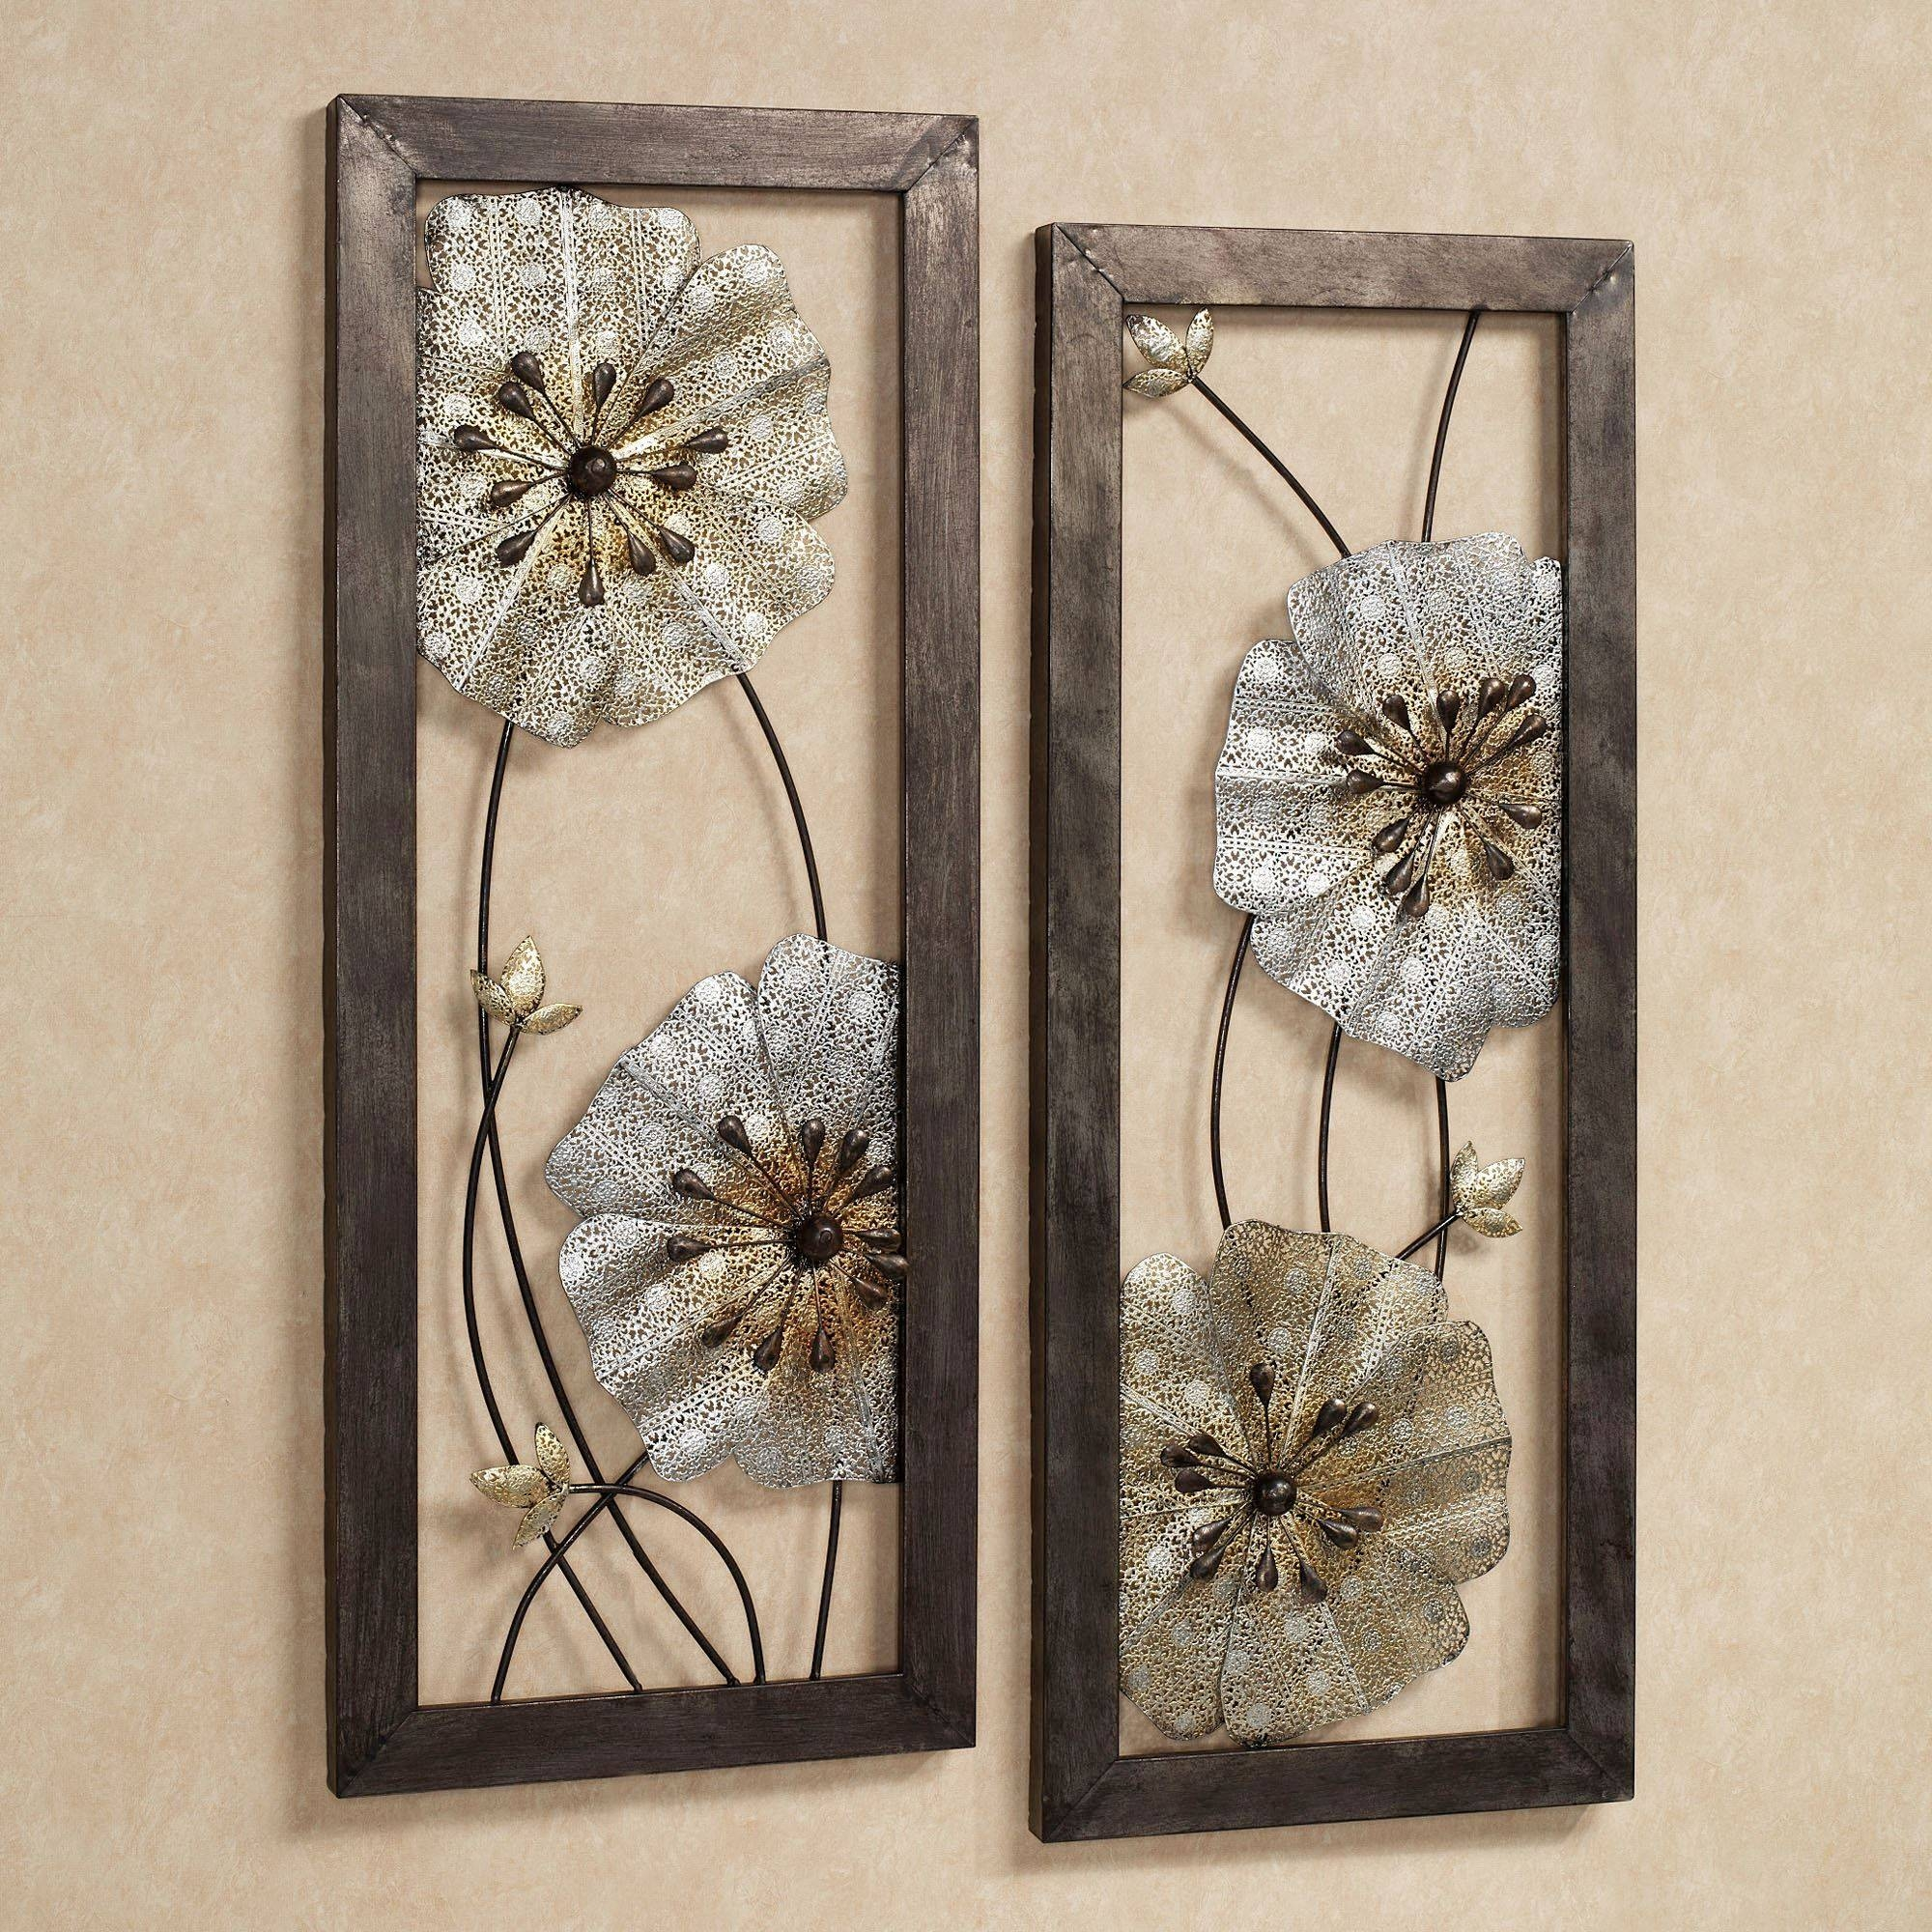 Malacia Openwork Floral Metal Wall Art Set Intended For Newest Metal Wall Art Sets (View 7 of 20)